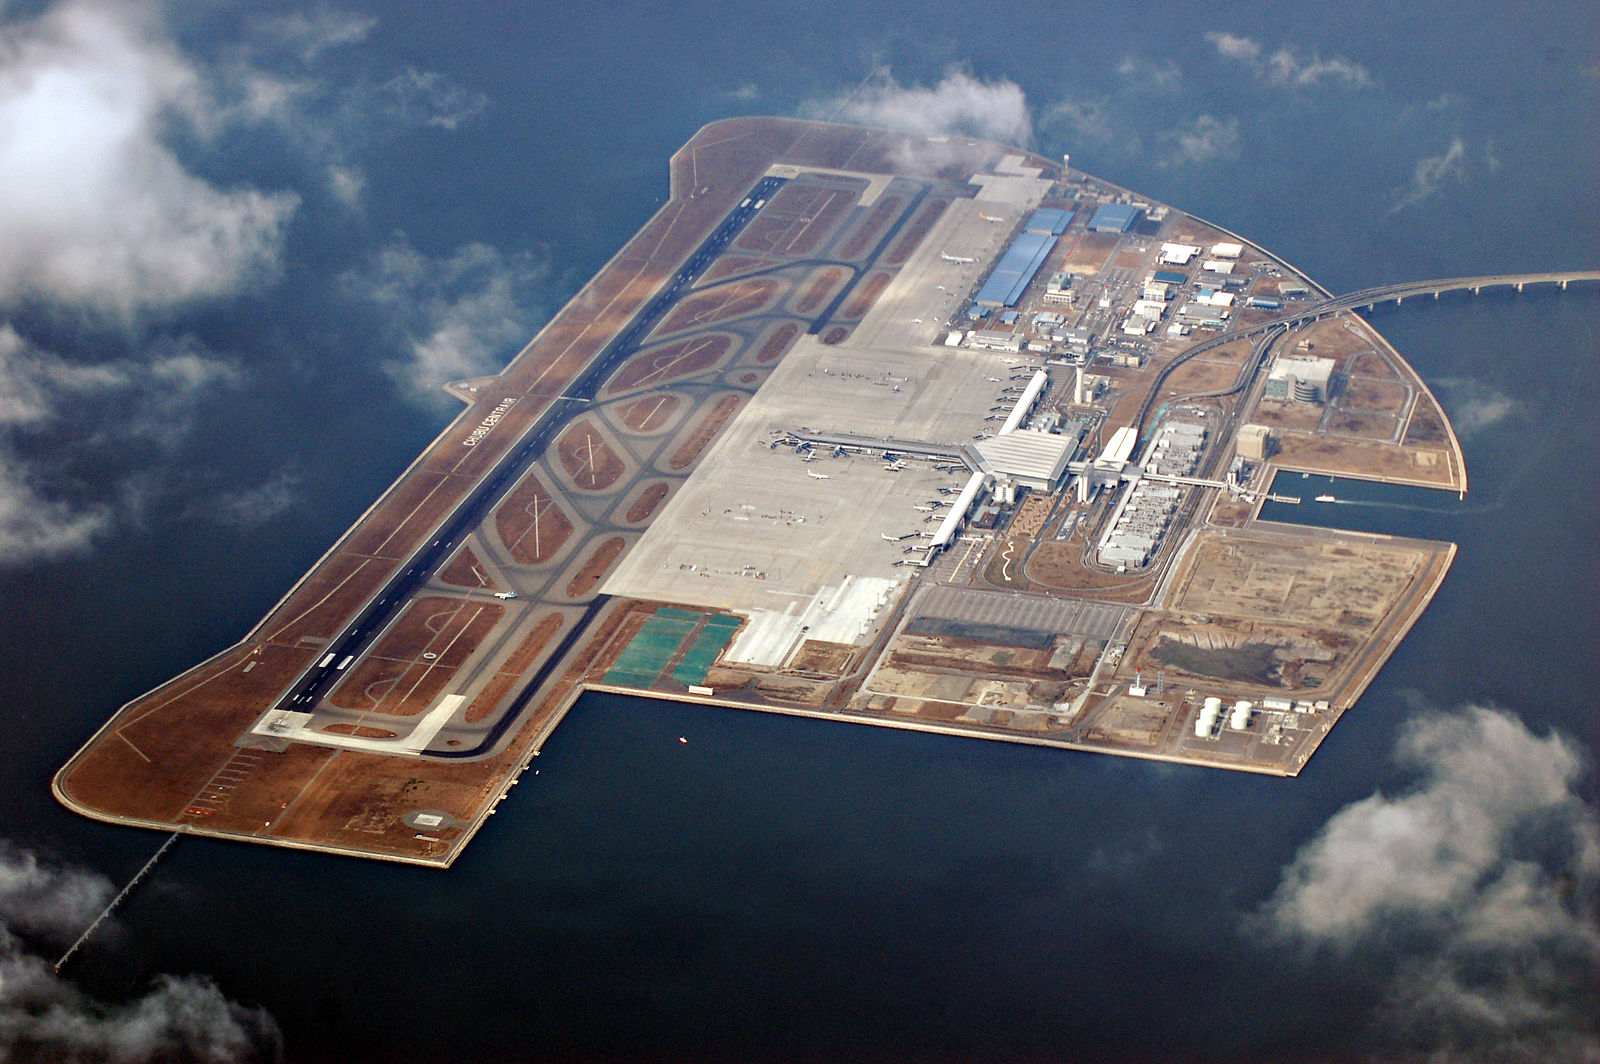 Nagoya Chubu Centrair International Airport serves Nagoya and is located on an artificial island in Ise Bay.